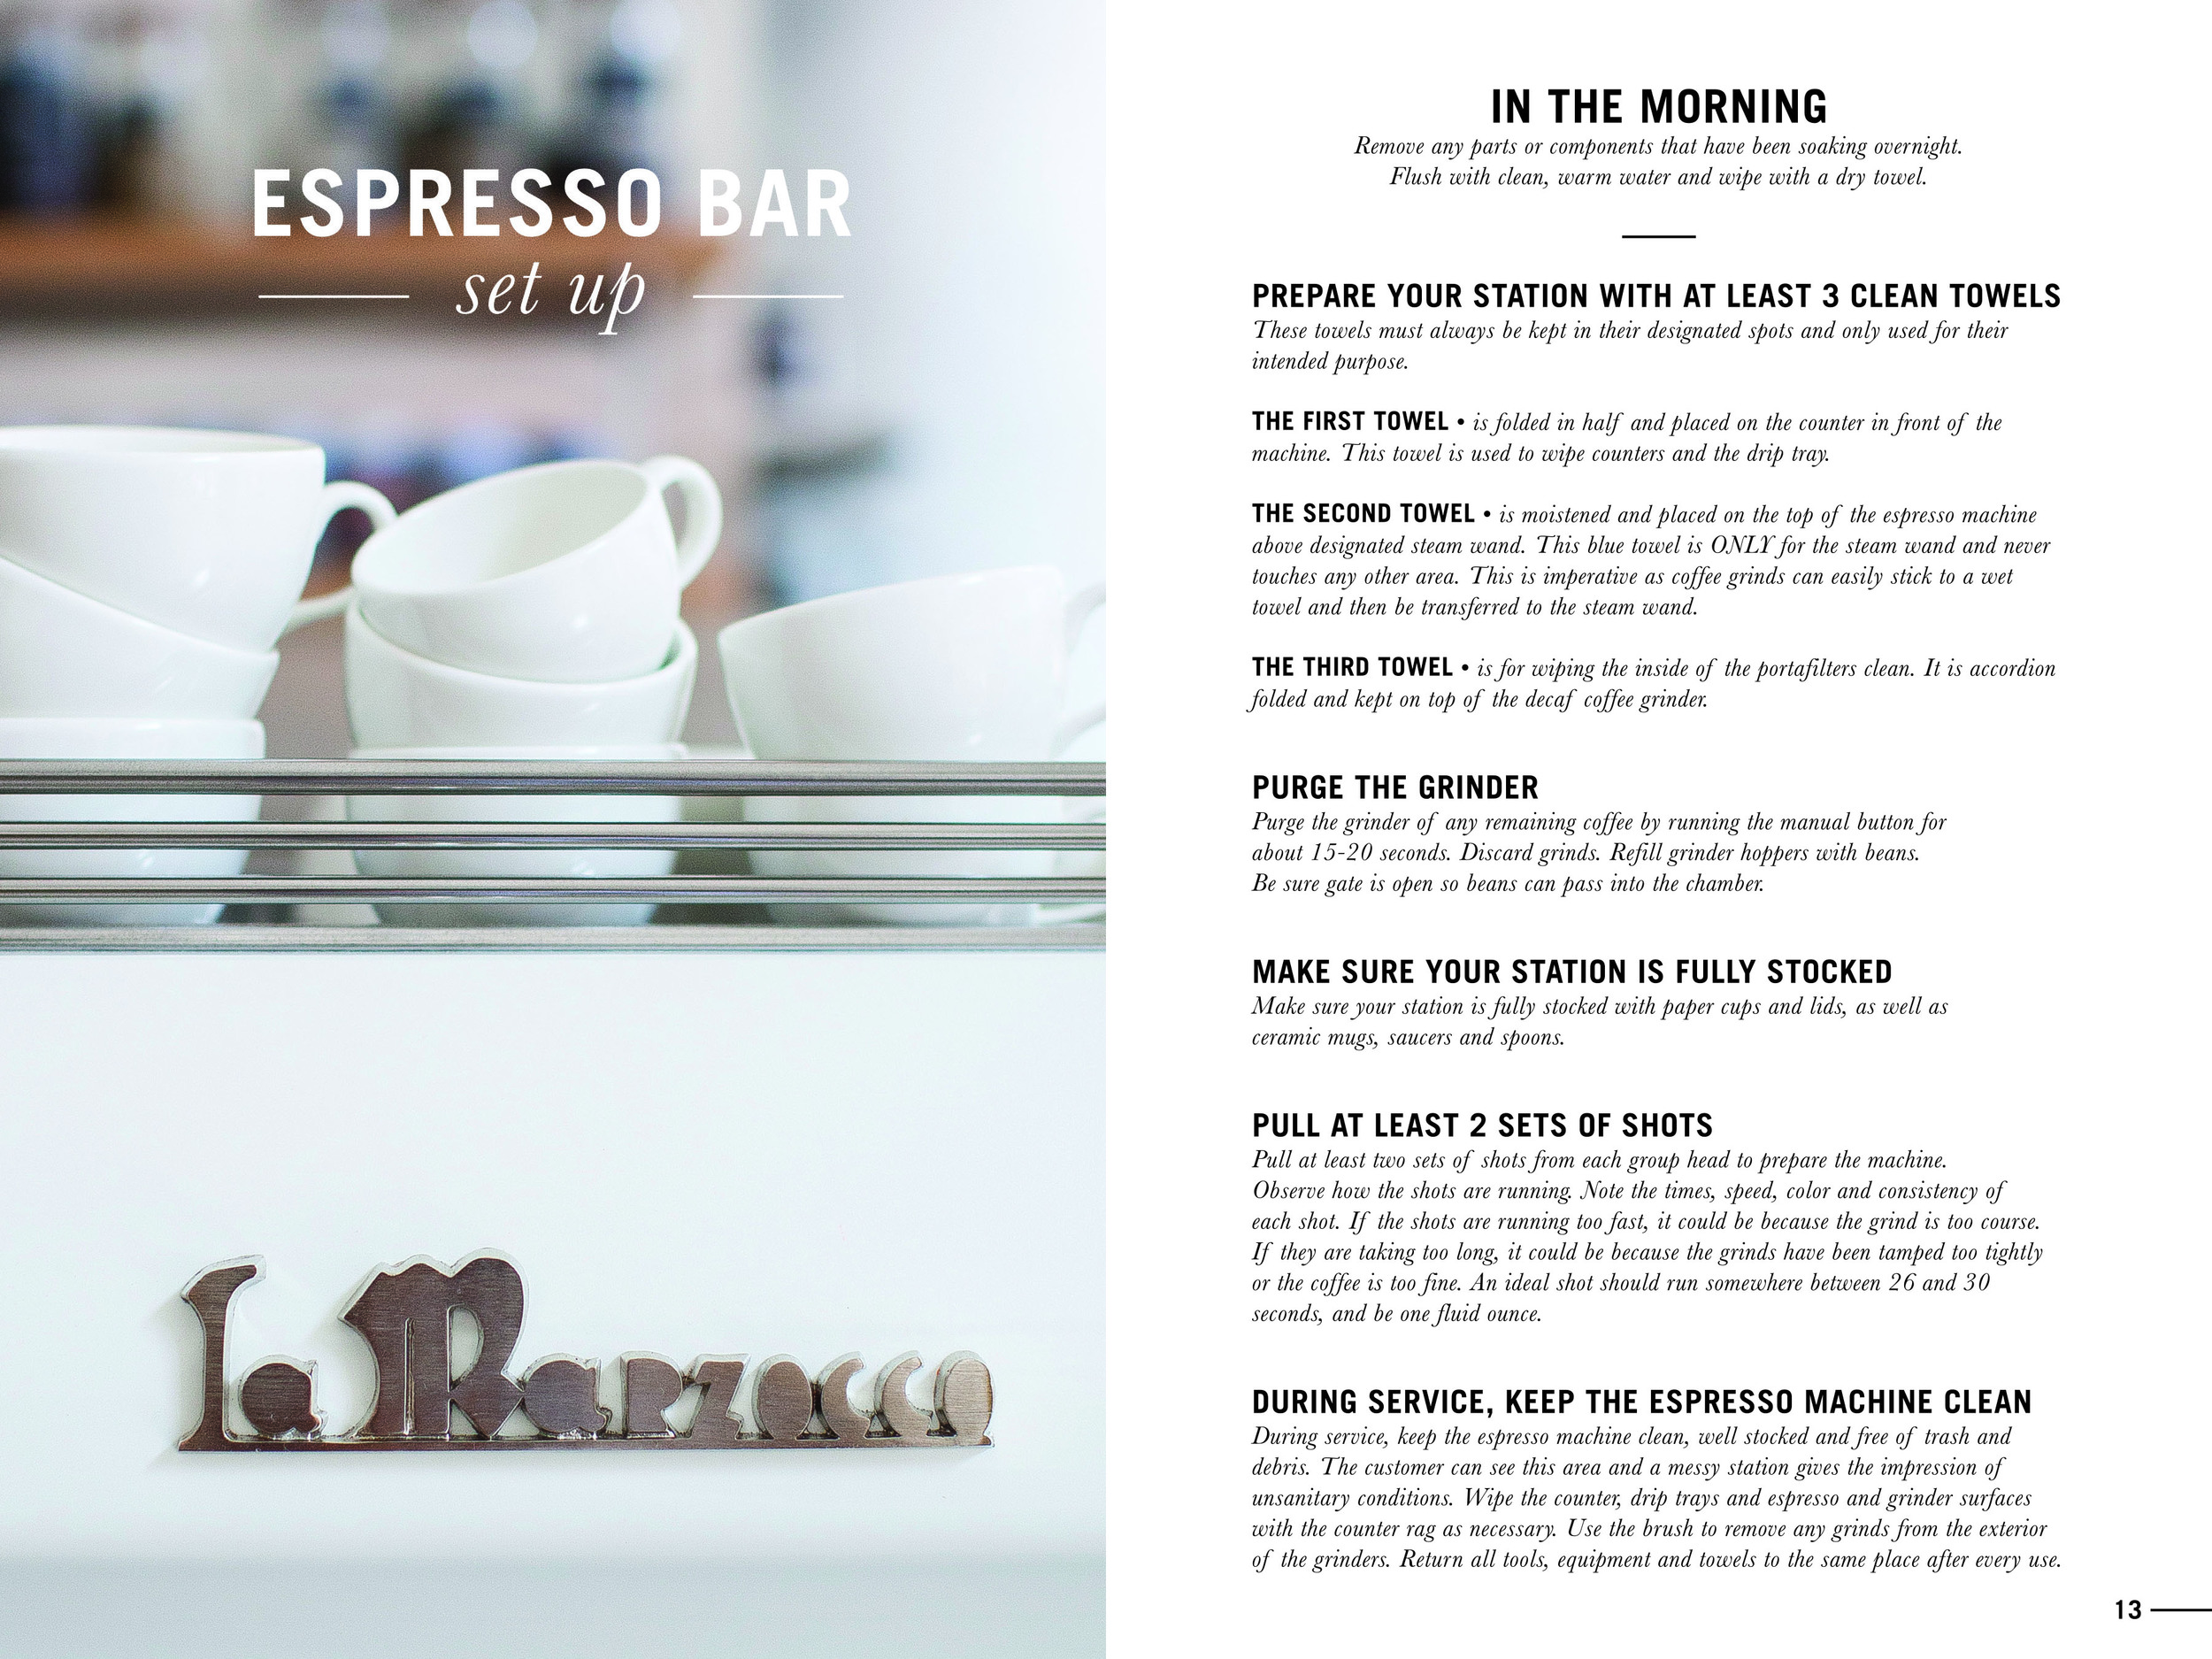 150806_coffeemanual_final_spreads-8.jpg